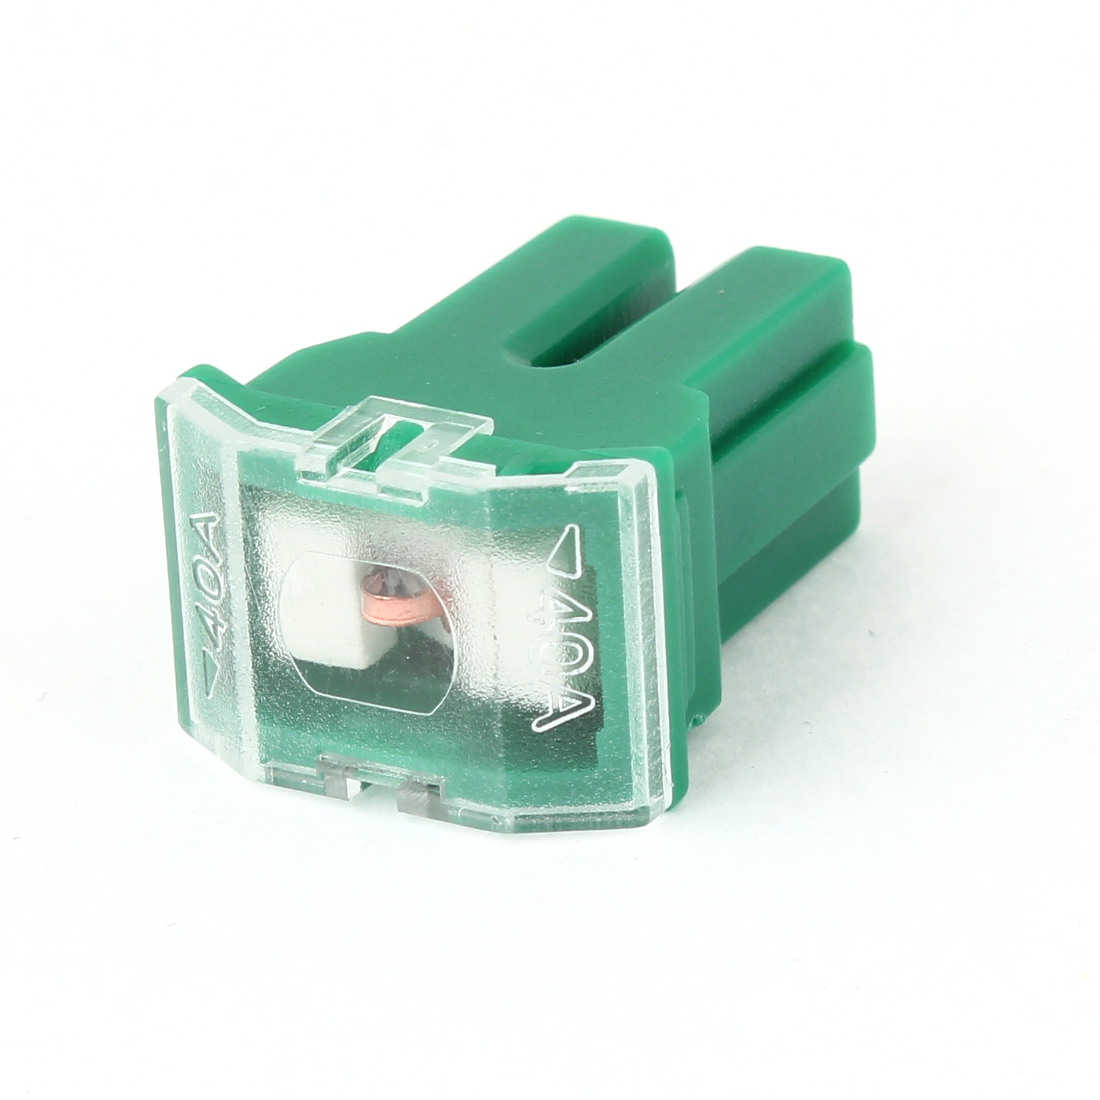 Plastic Female Plug in Type Blade PAL Fuse Green 40A 40AMP for Auto Car